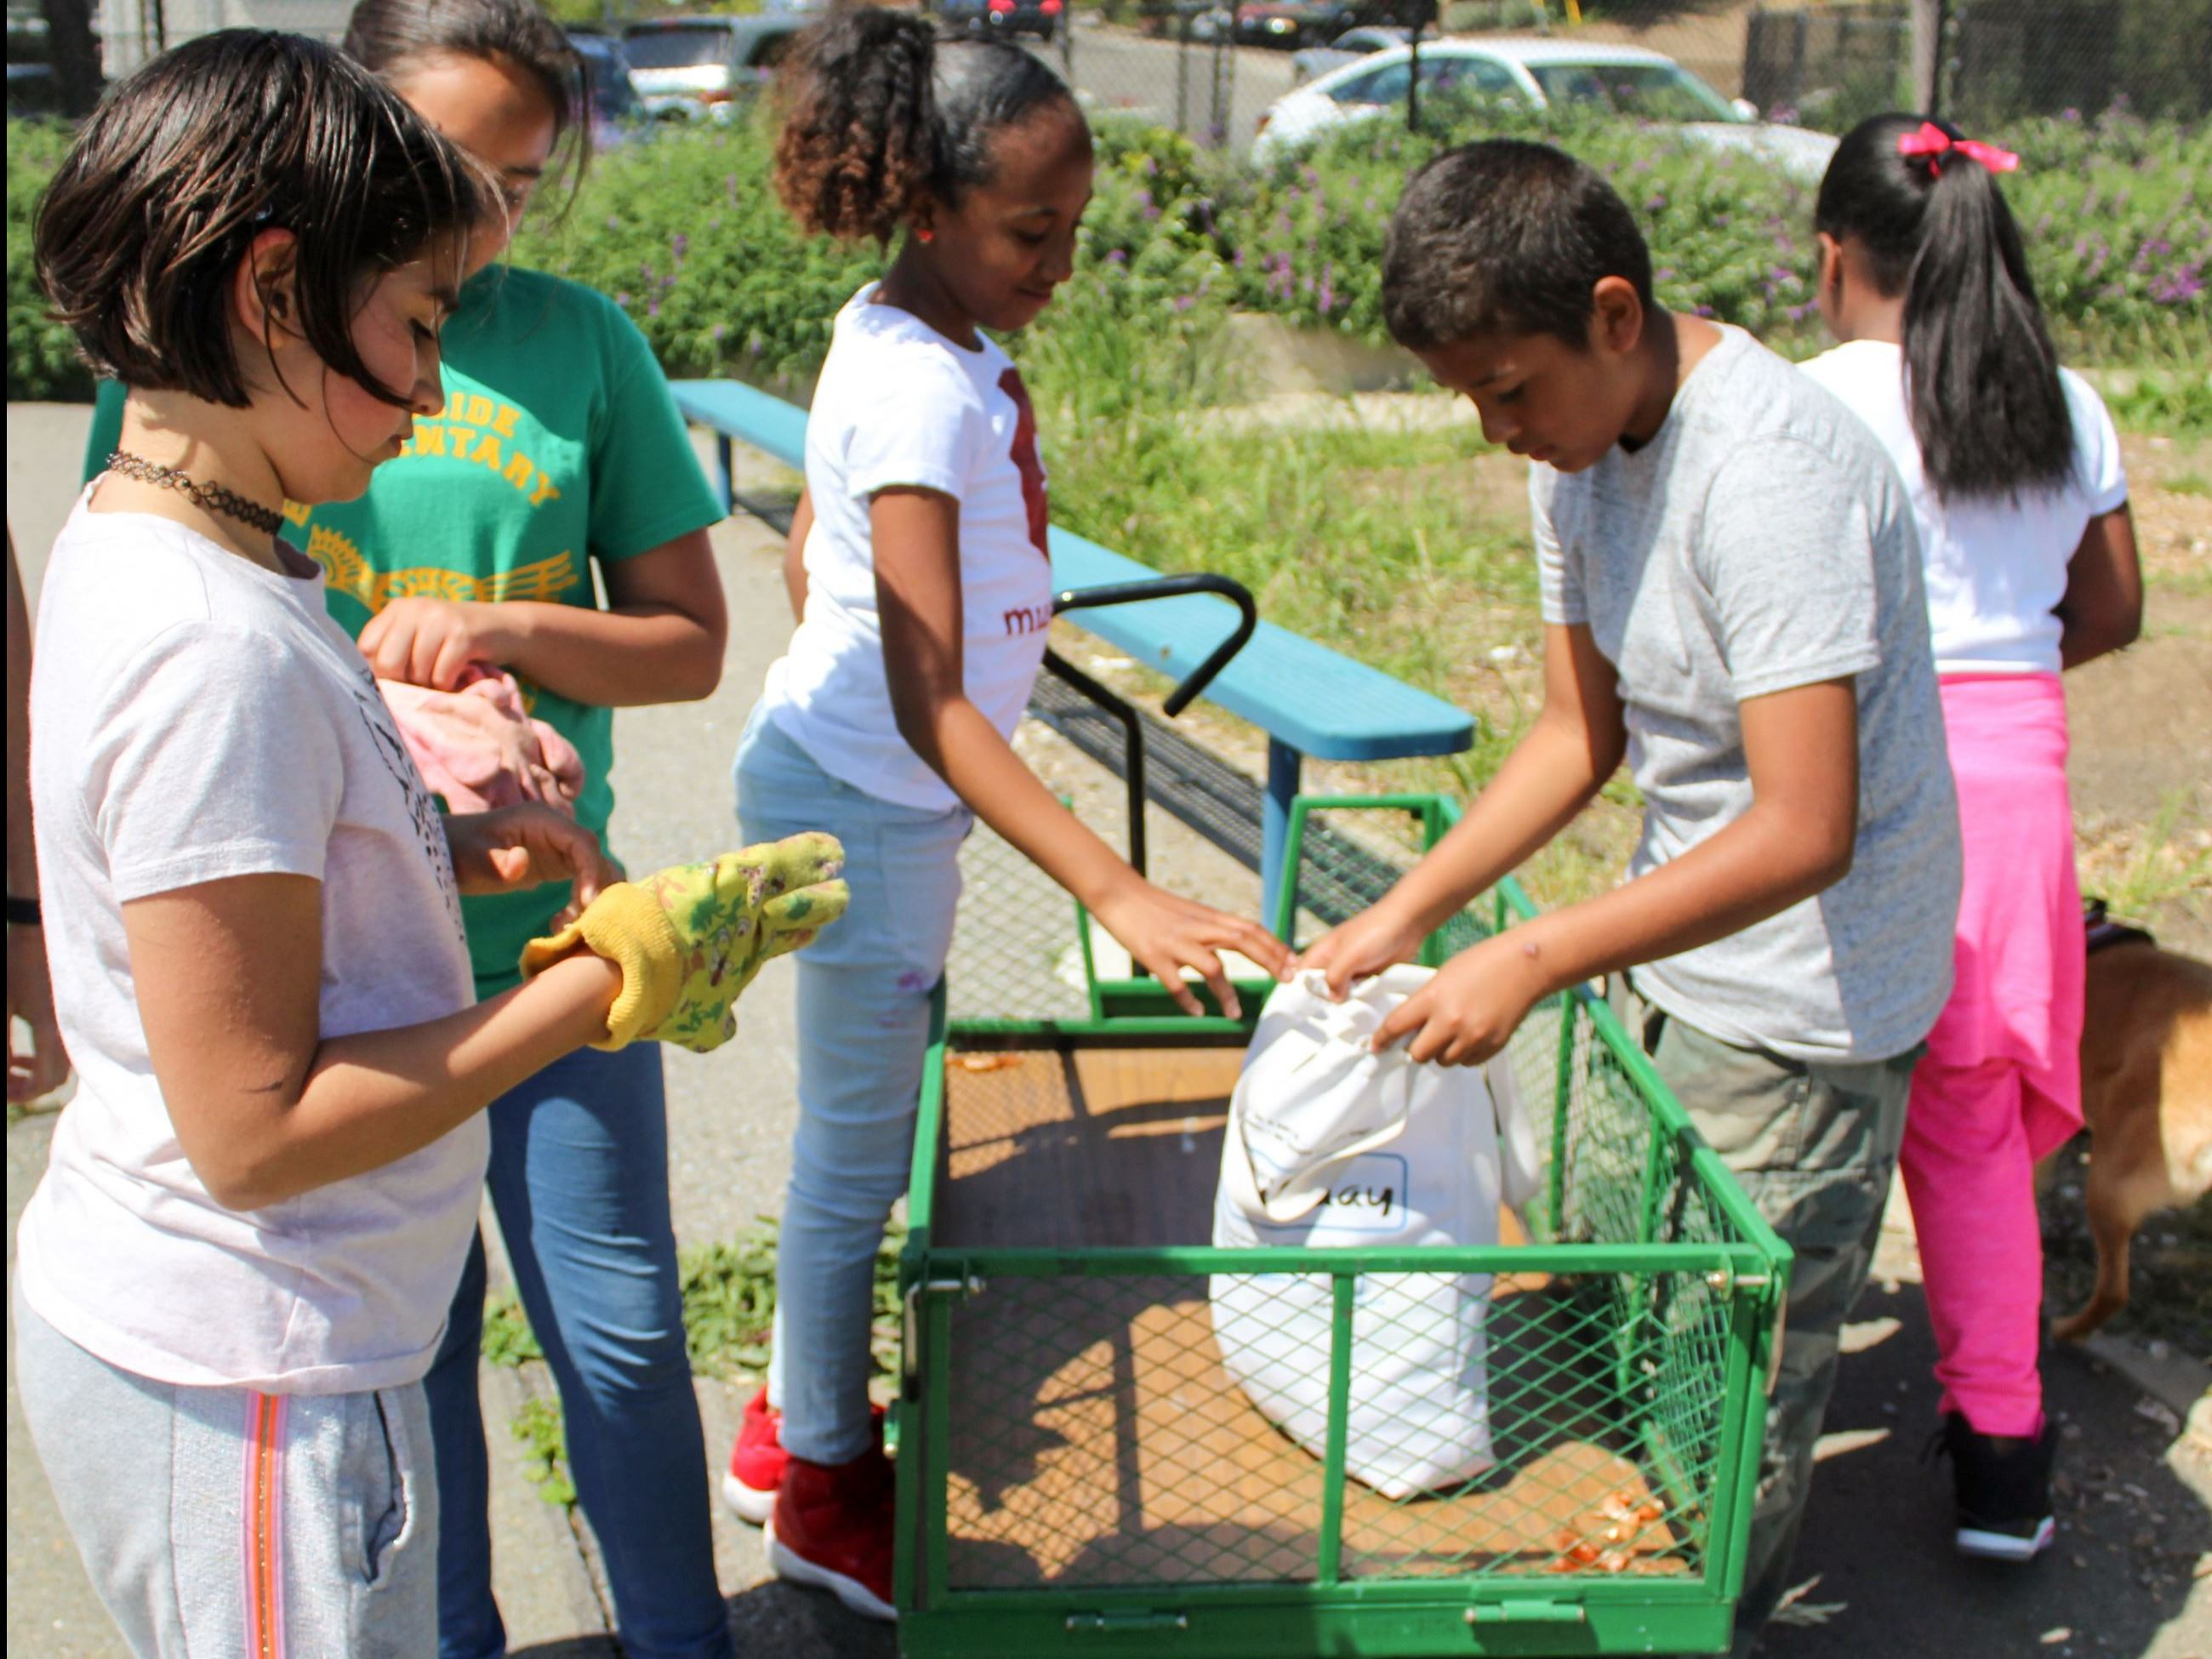 Students Participating in Gardening Group at Riverside Elementary